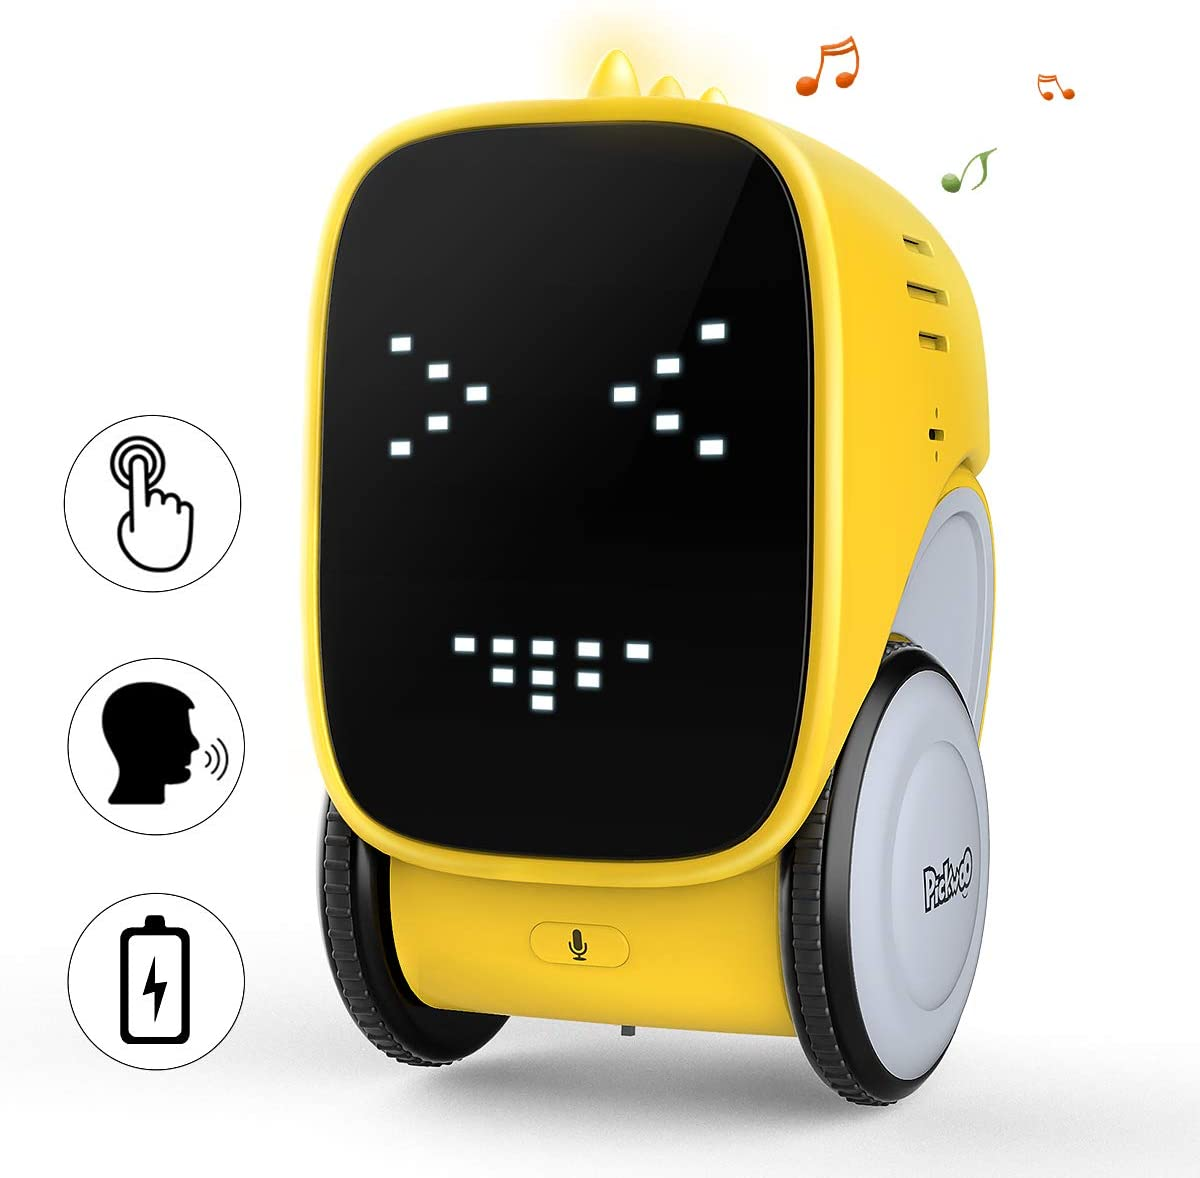 Pickwoo Smart Robot, R16 Robot Toys Talking Robot Kids Control Robot, STEM Educational Toys for Toddlers, Dancing, Talking Singing, Recorder, Touch, and Voice Control.